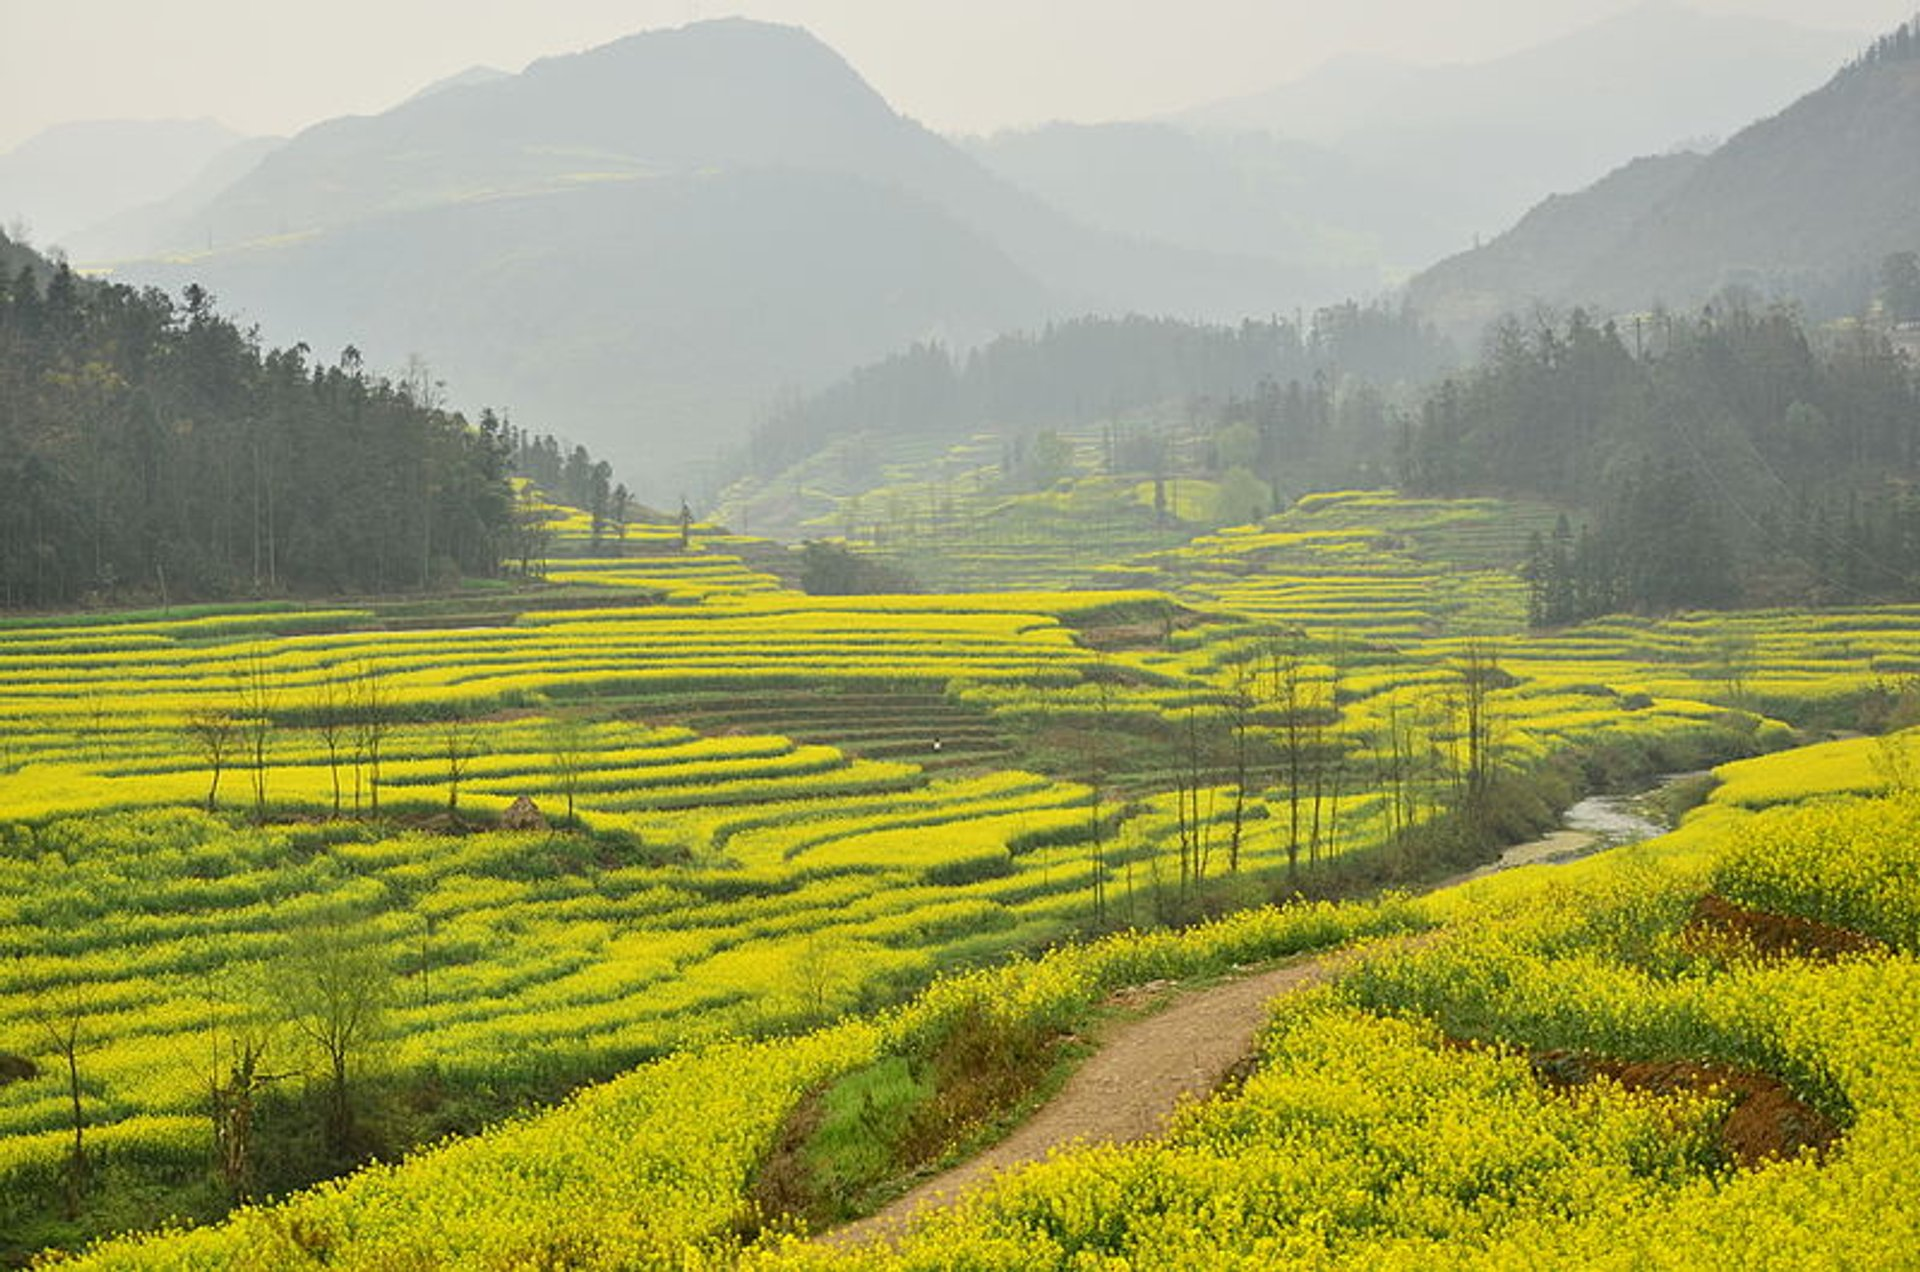 Canola Fields in Luoping in China - Best Season 2020